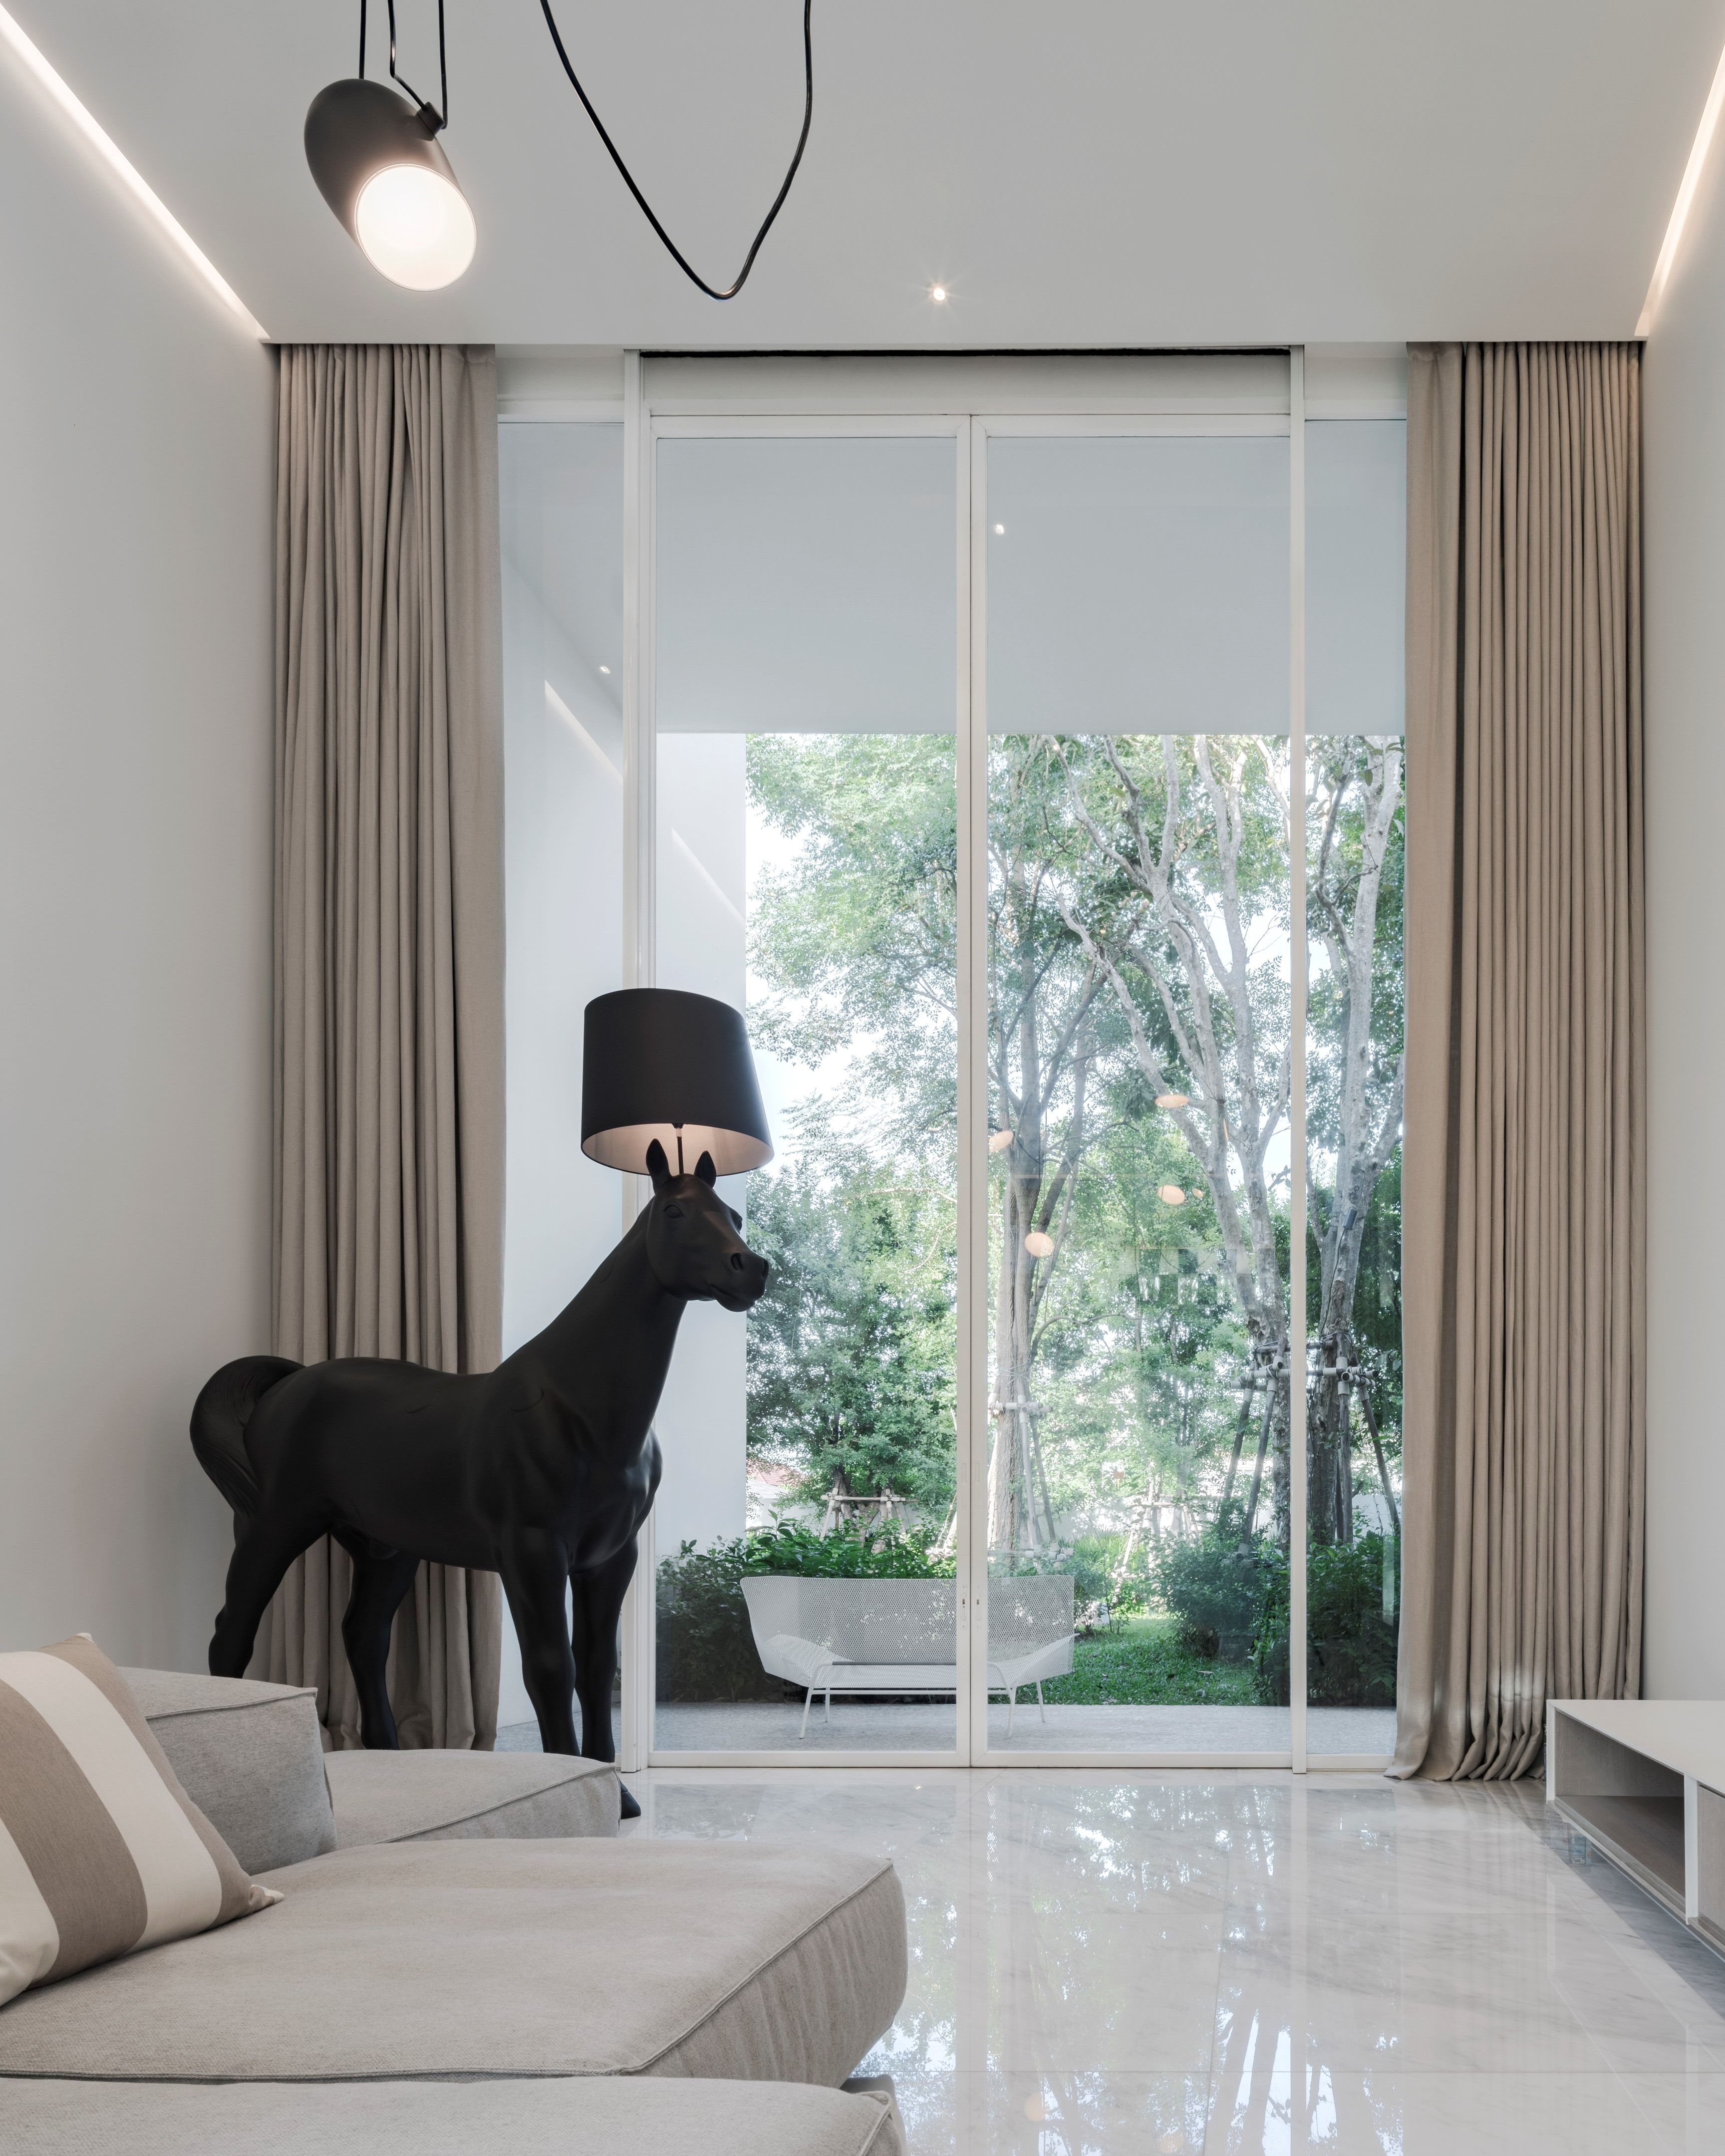 Rabbit Residence Picture Gallery In 2020 Open Space Interior Design Styles Contemporary House Design